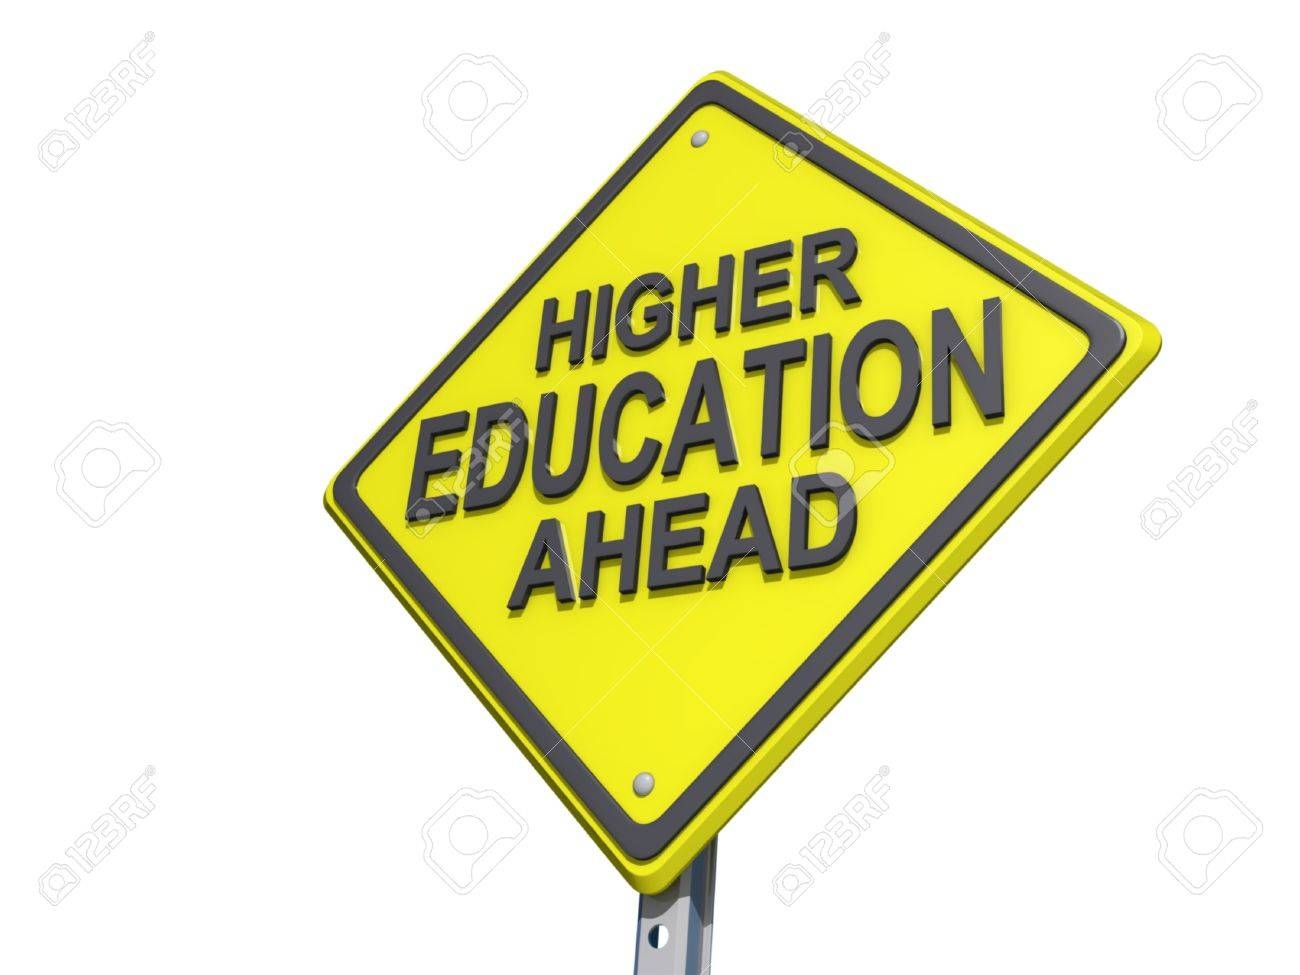 The Road To Higher Education With >> A Yield Road Sign With Higher Education Ahead Stock Photo Picture